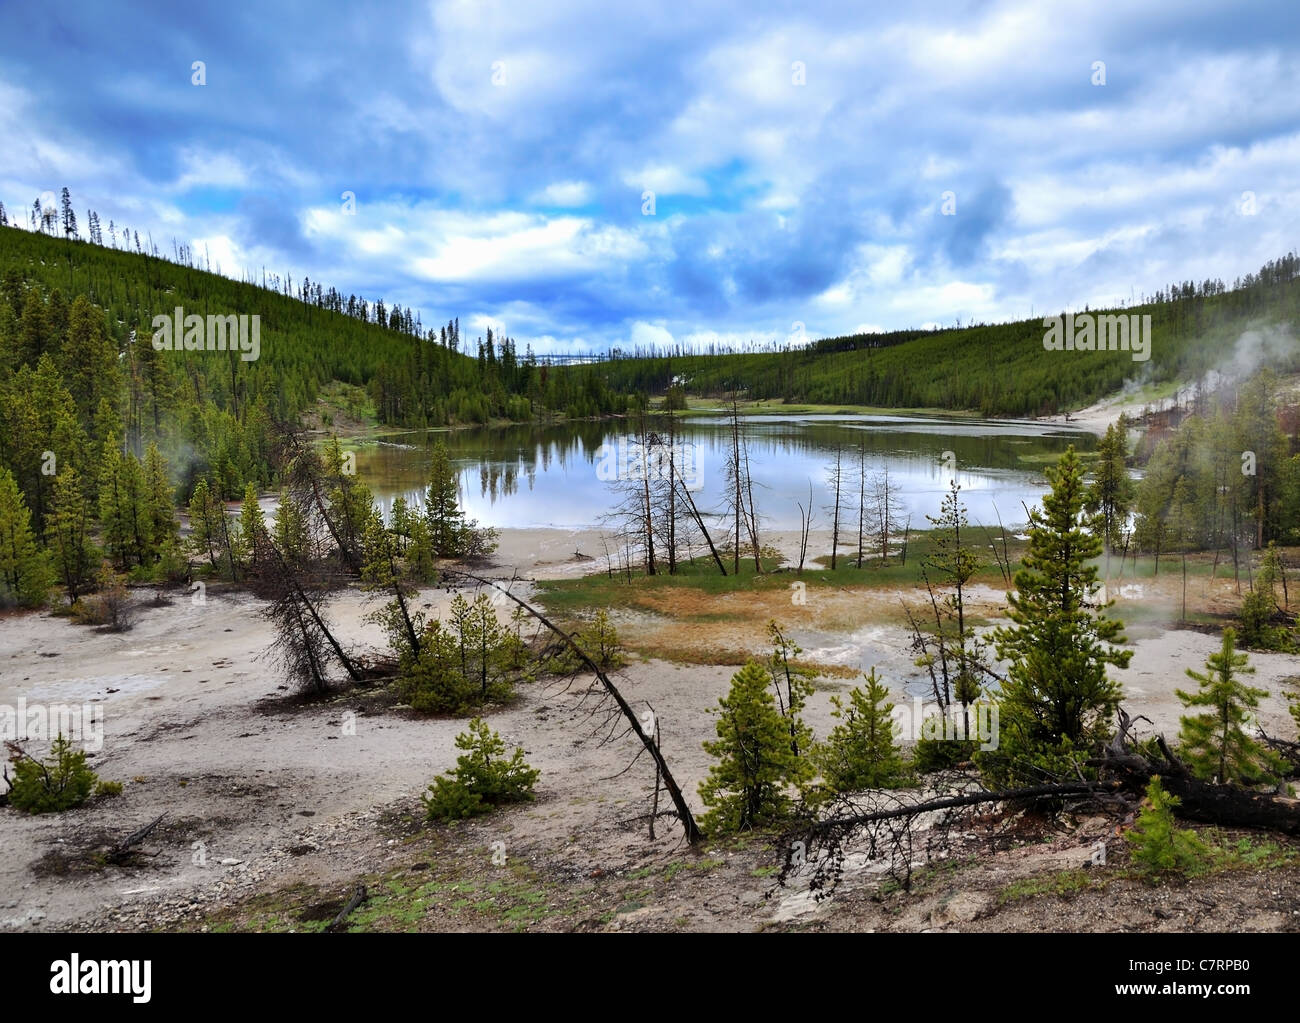 A Lake In The Mountain Volcanic Valley - Stock Image